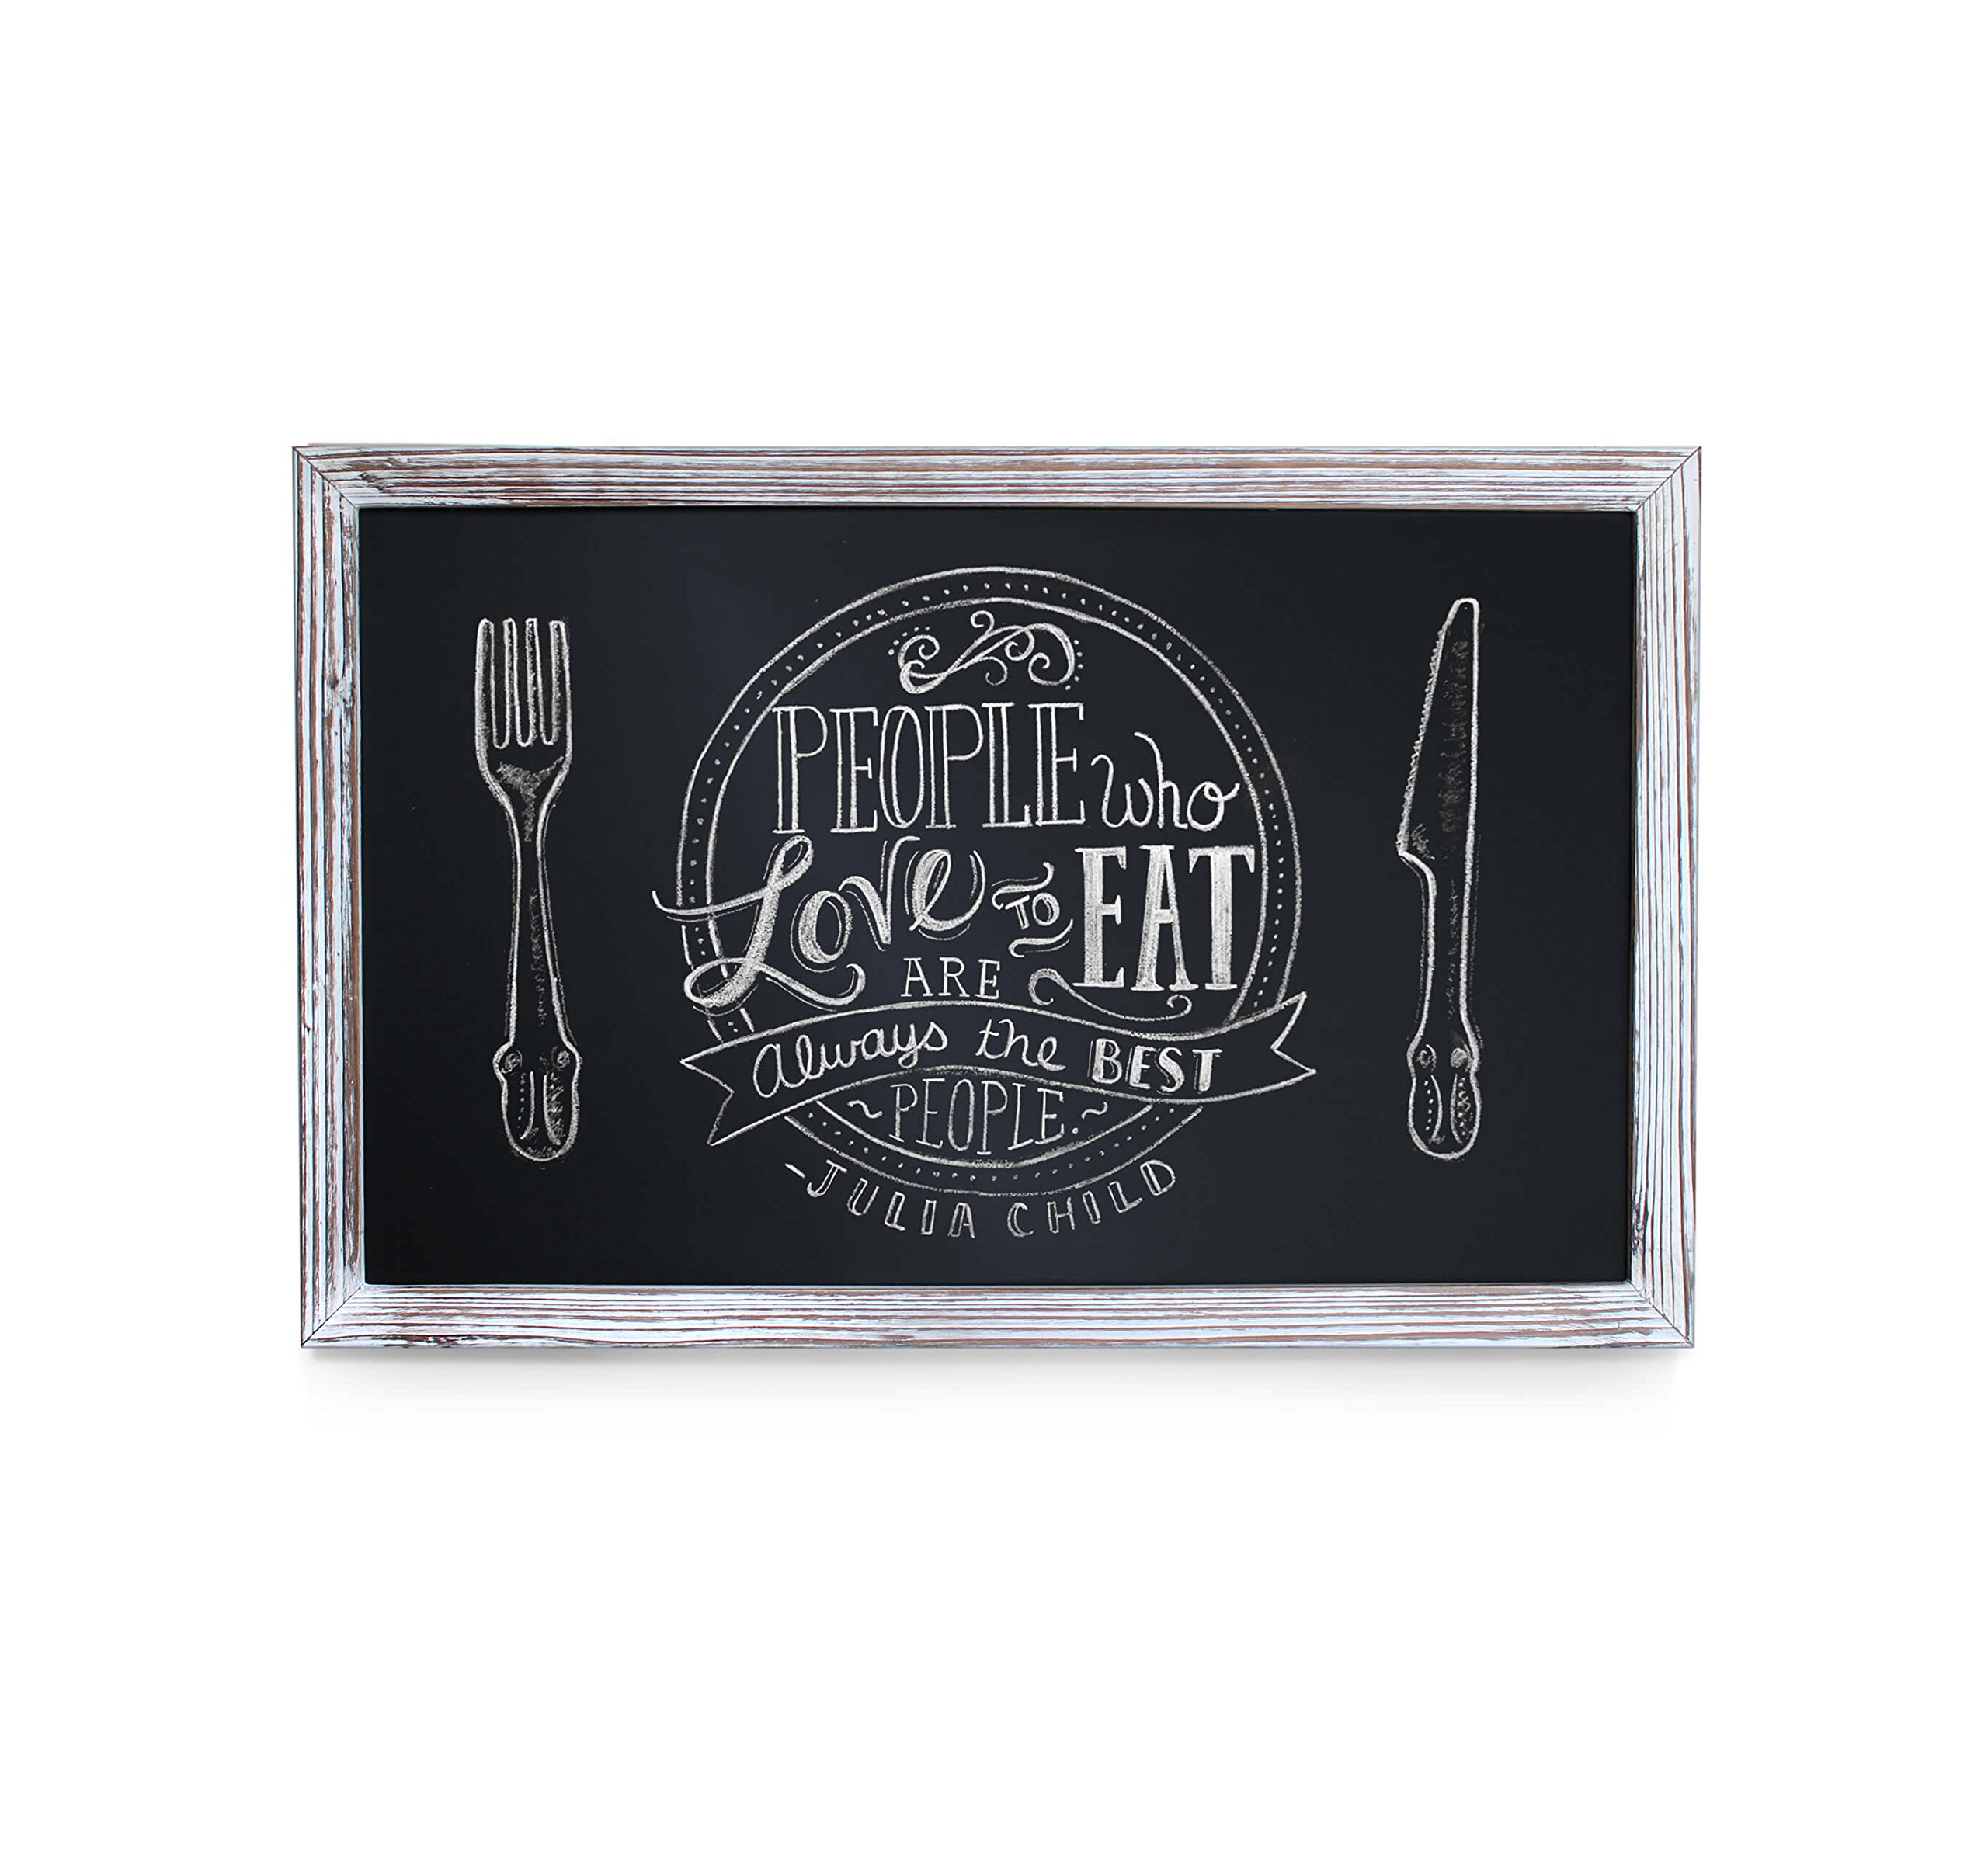 HBCY Creations Rustic Whitewashed Magnetic Wall Chalkboard, Small Size 11'' x 17'', Framed Decorative Chalkboard - Great for Kitchen Decor, Weddings, Restaurant Menus and More! … (11'' x 17'')